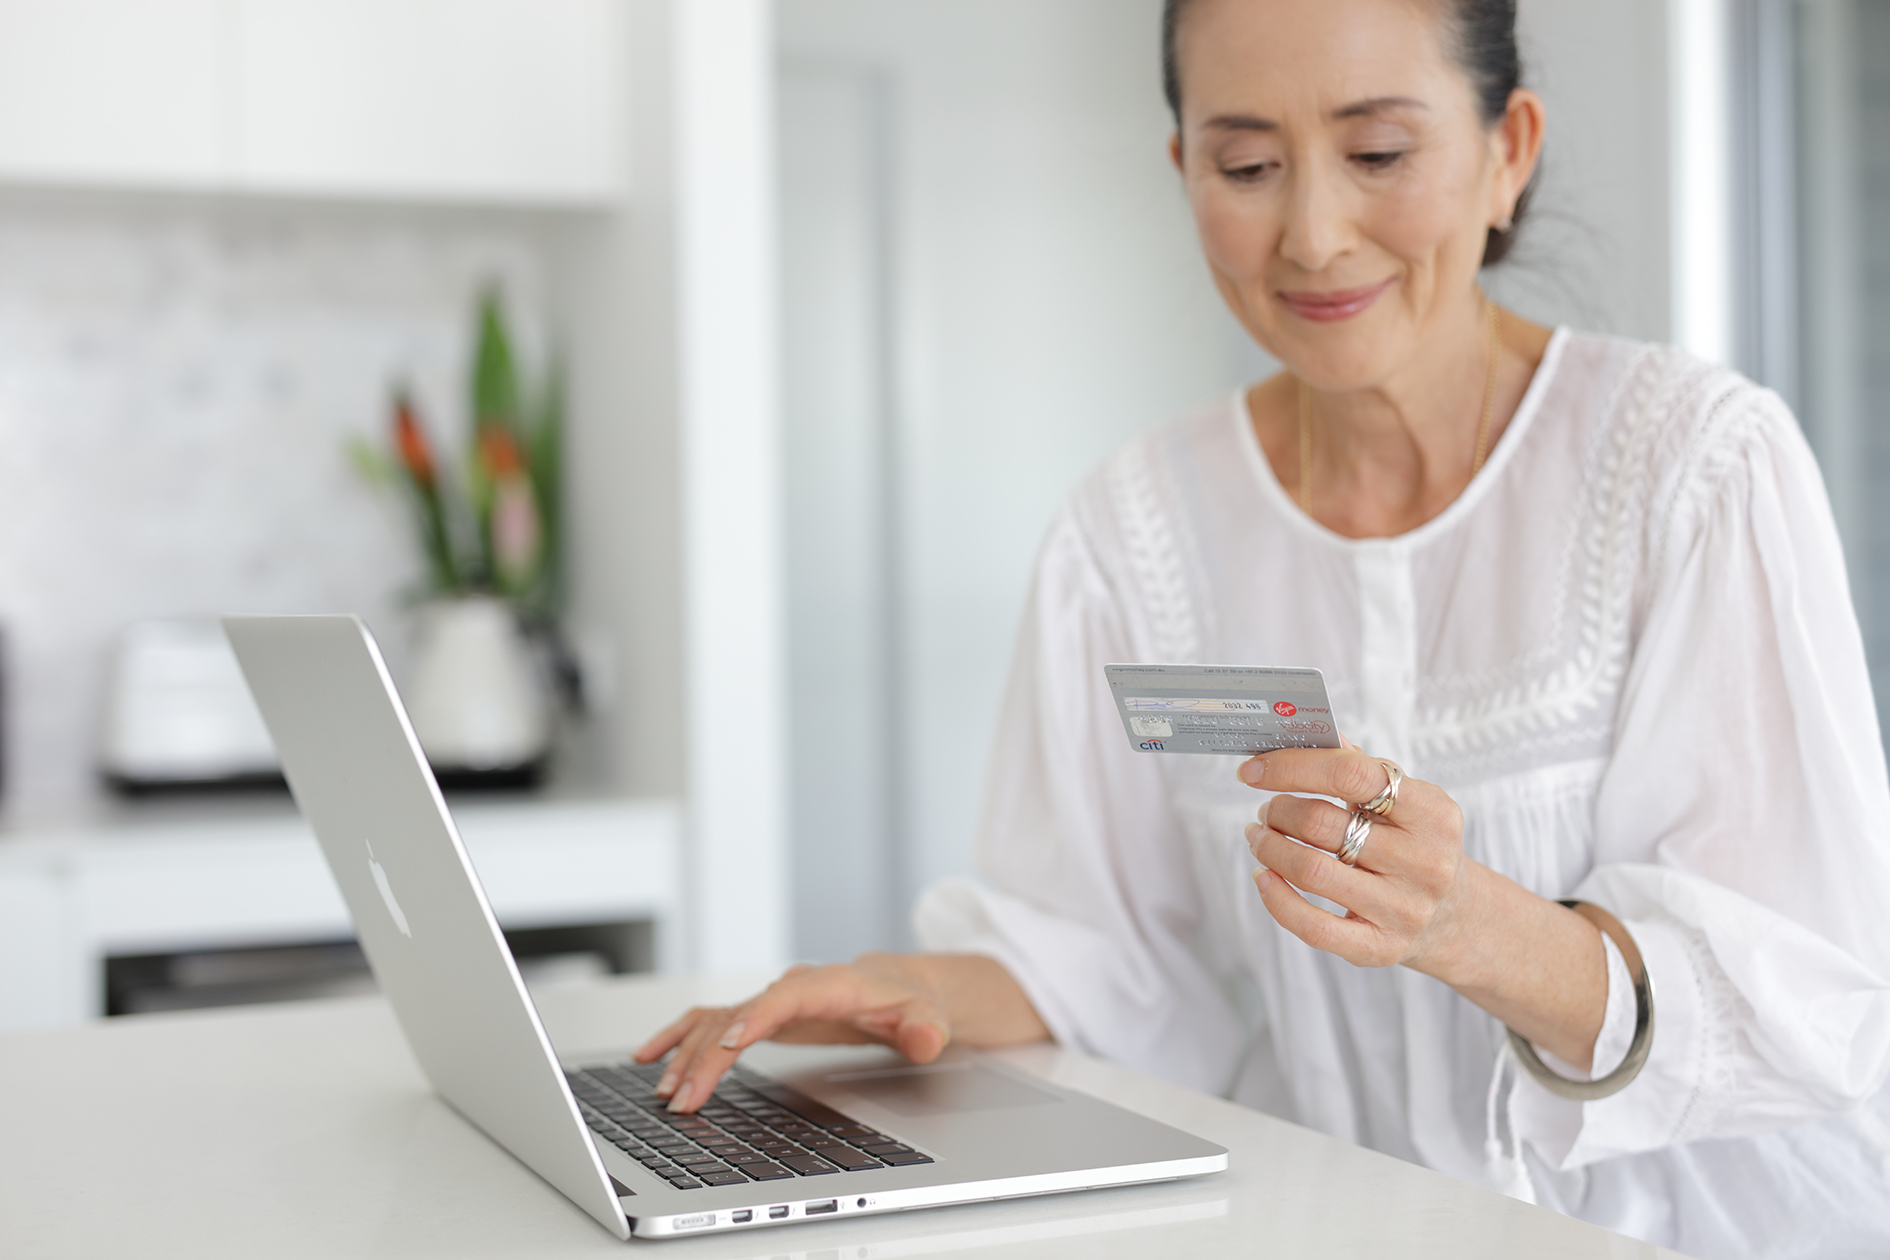 Woman pay bill with credit card on laptop computer in kitchen